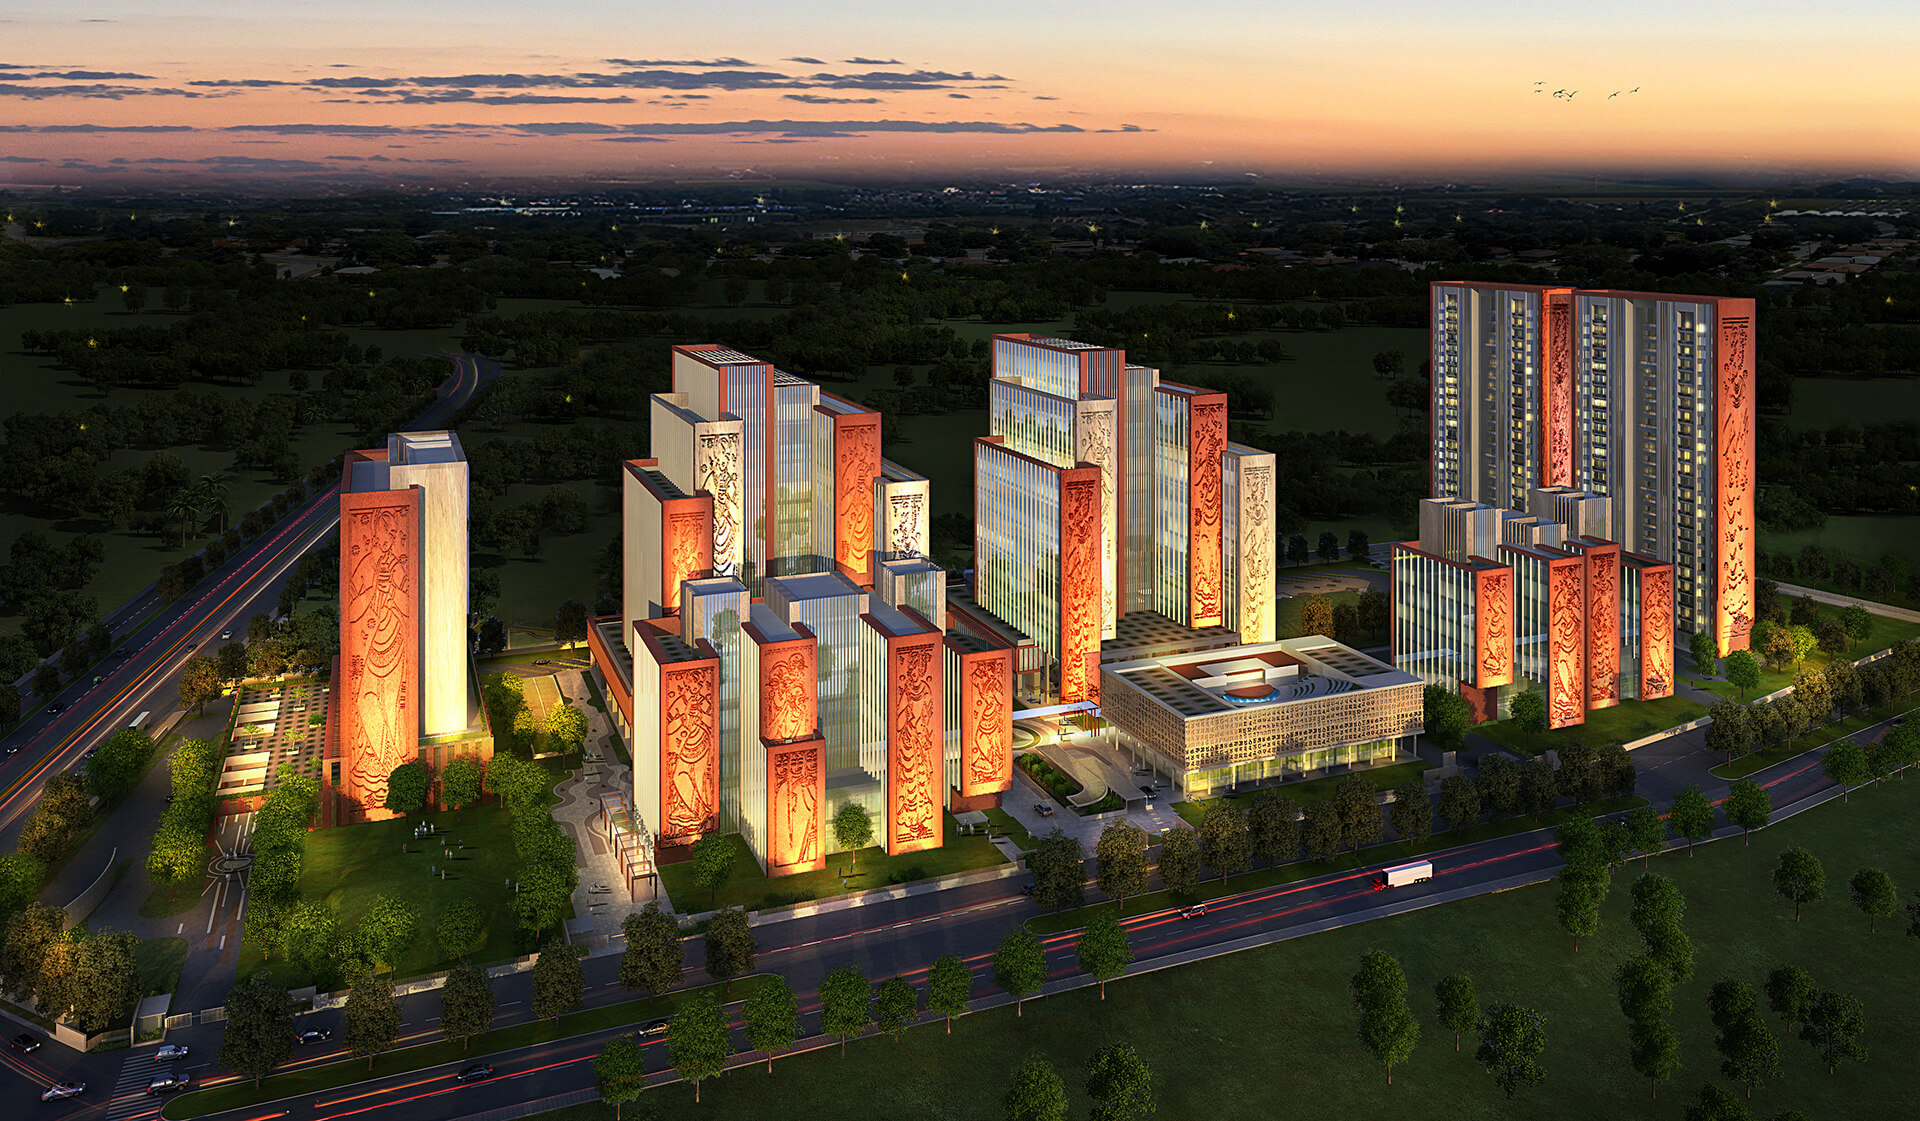 The mixed land use building features residential towers, commercial offices, a hotel and convention centre | ITC Campus by Morphogenesis | STIRworld